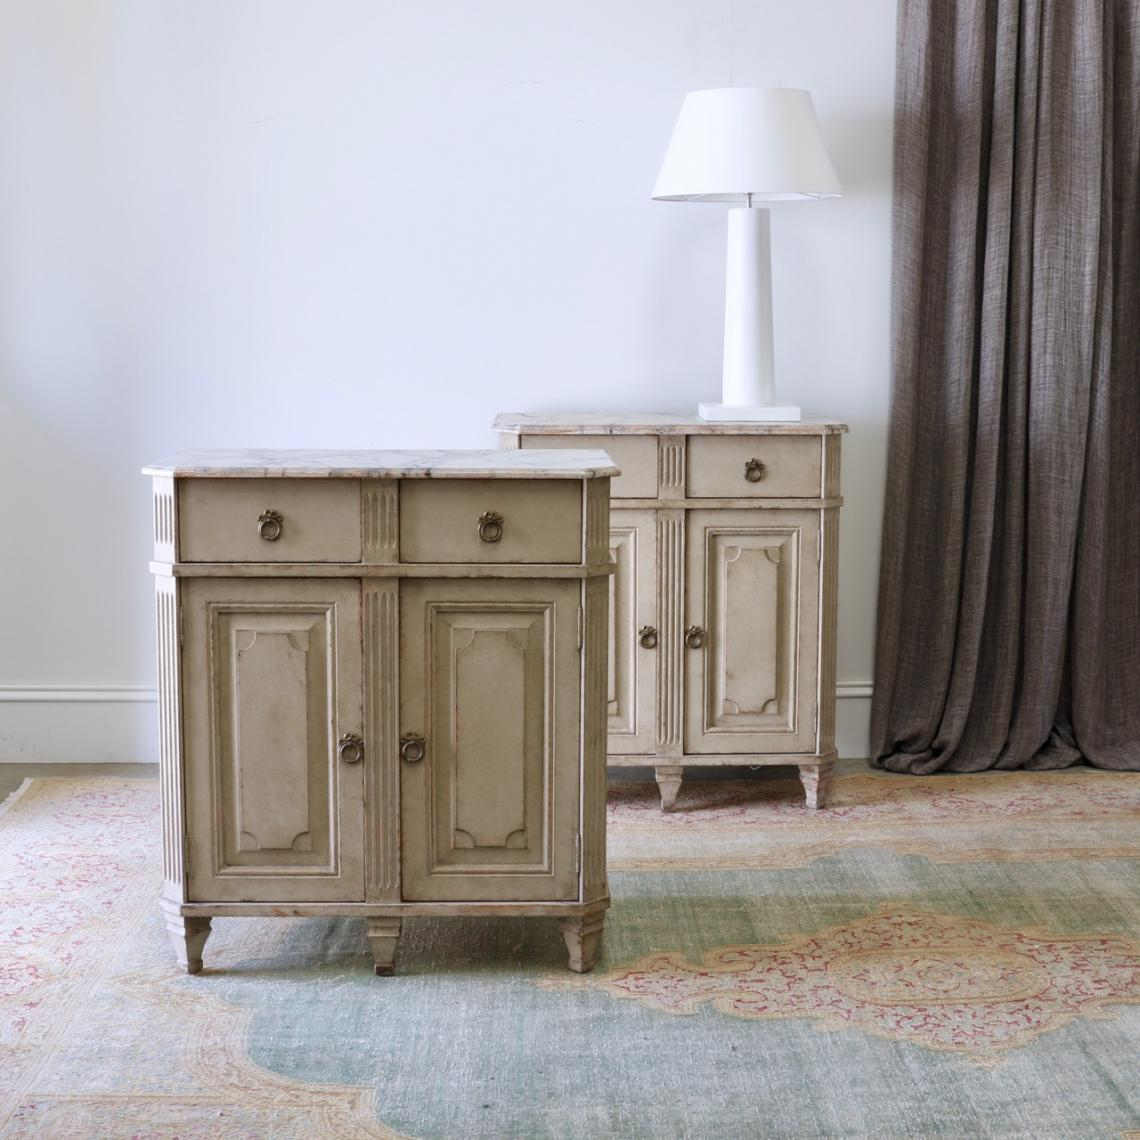 106-60 - Pair of Gustavian Cupboards with Drawers